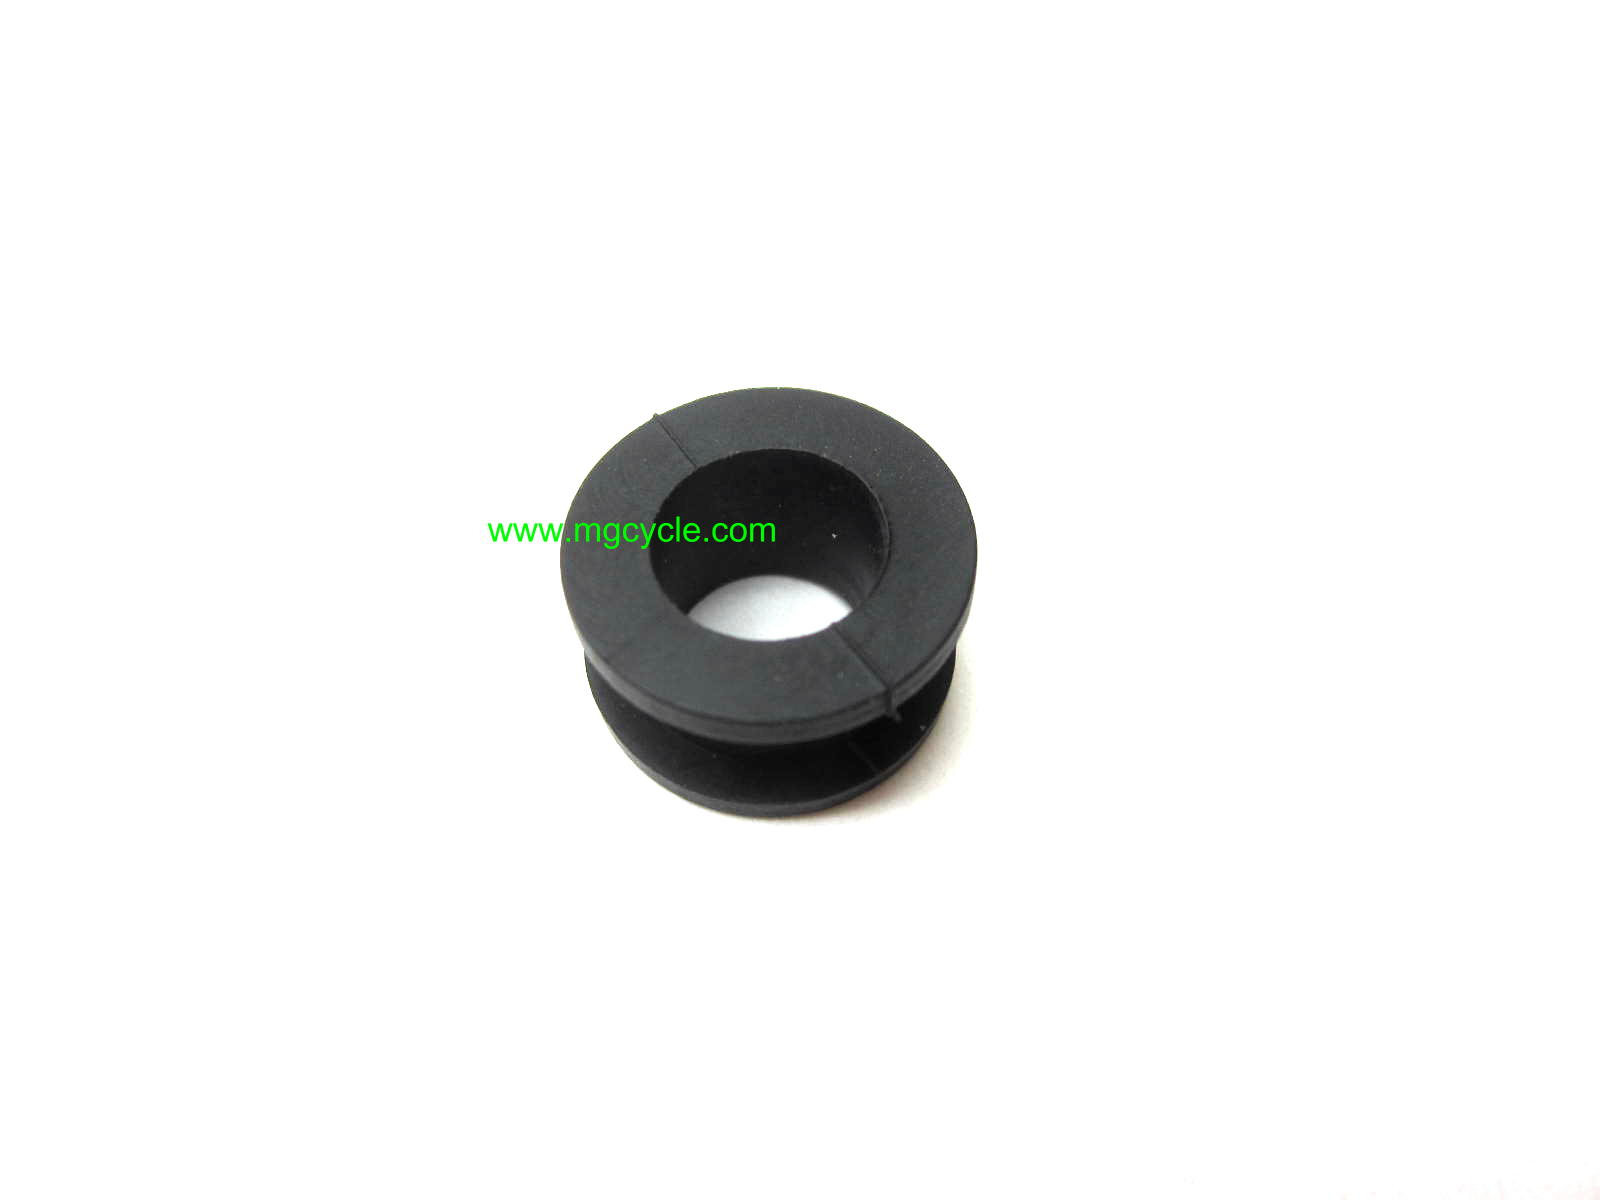 grommet for windshield, 1100 California series